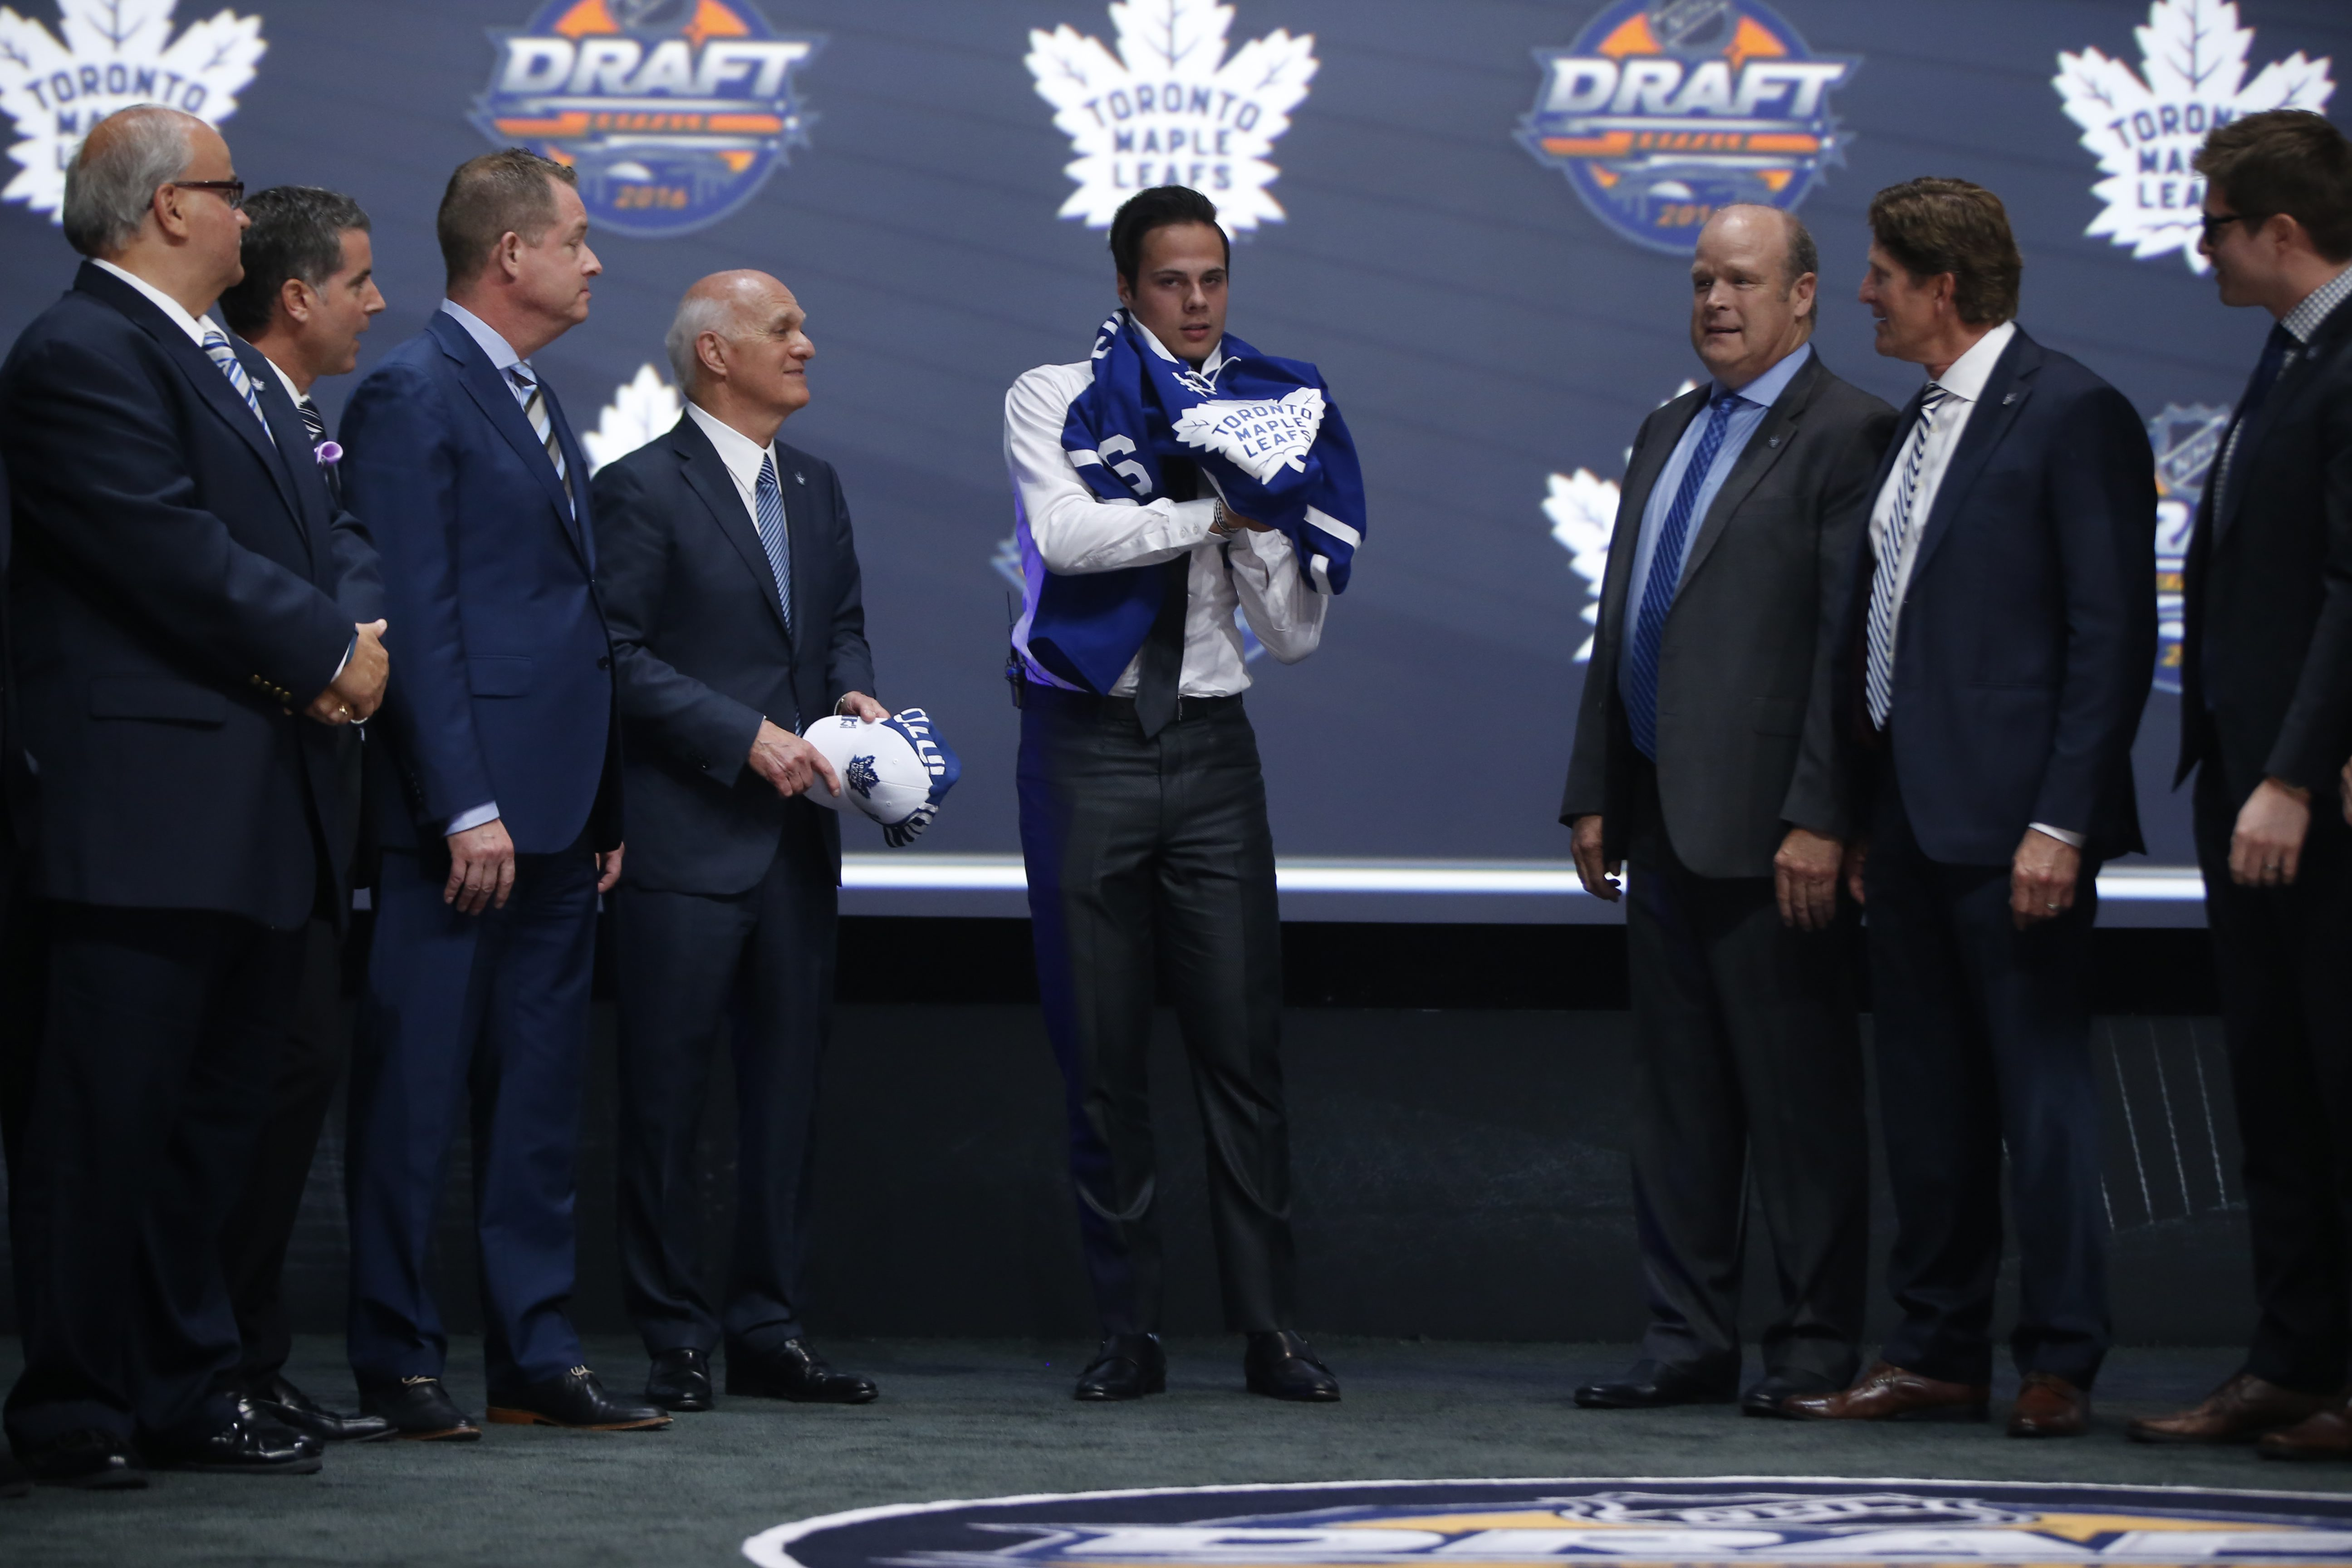 Auston Matthews is chosen as the 1st pick in the NHL draft at the First Niagara Center on Friday, June 24, 2016. (Harry Scull Jr./Buffalo News)